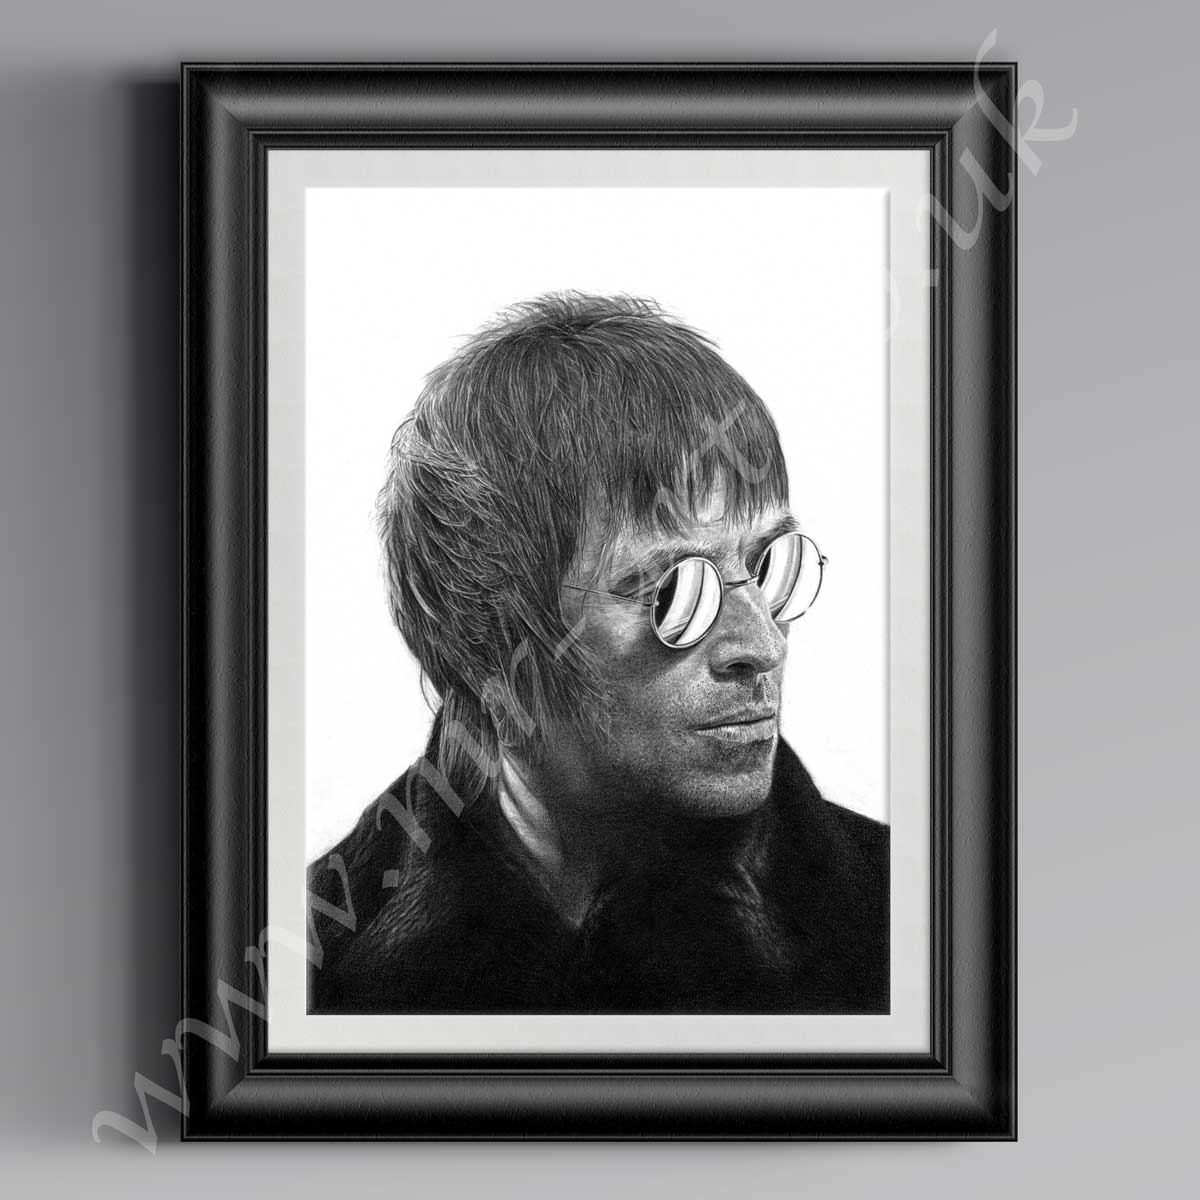 Liam Gallagher limited edition Picture,drawing in pencil by MR-Art.co.uk